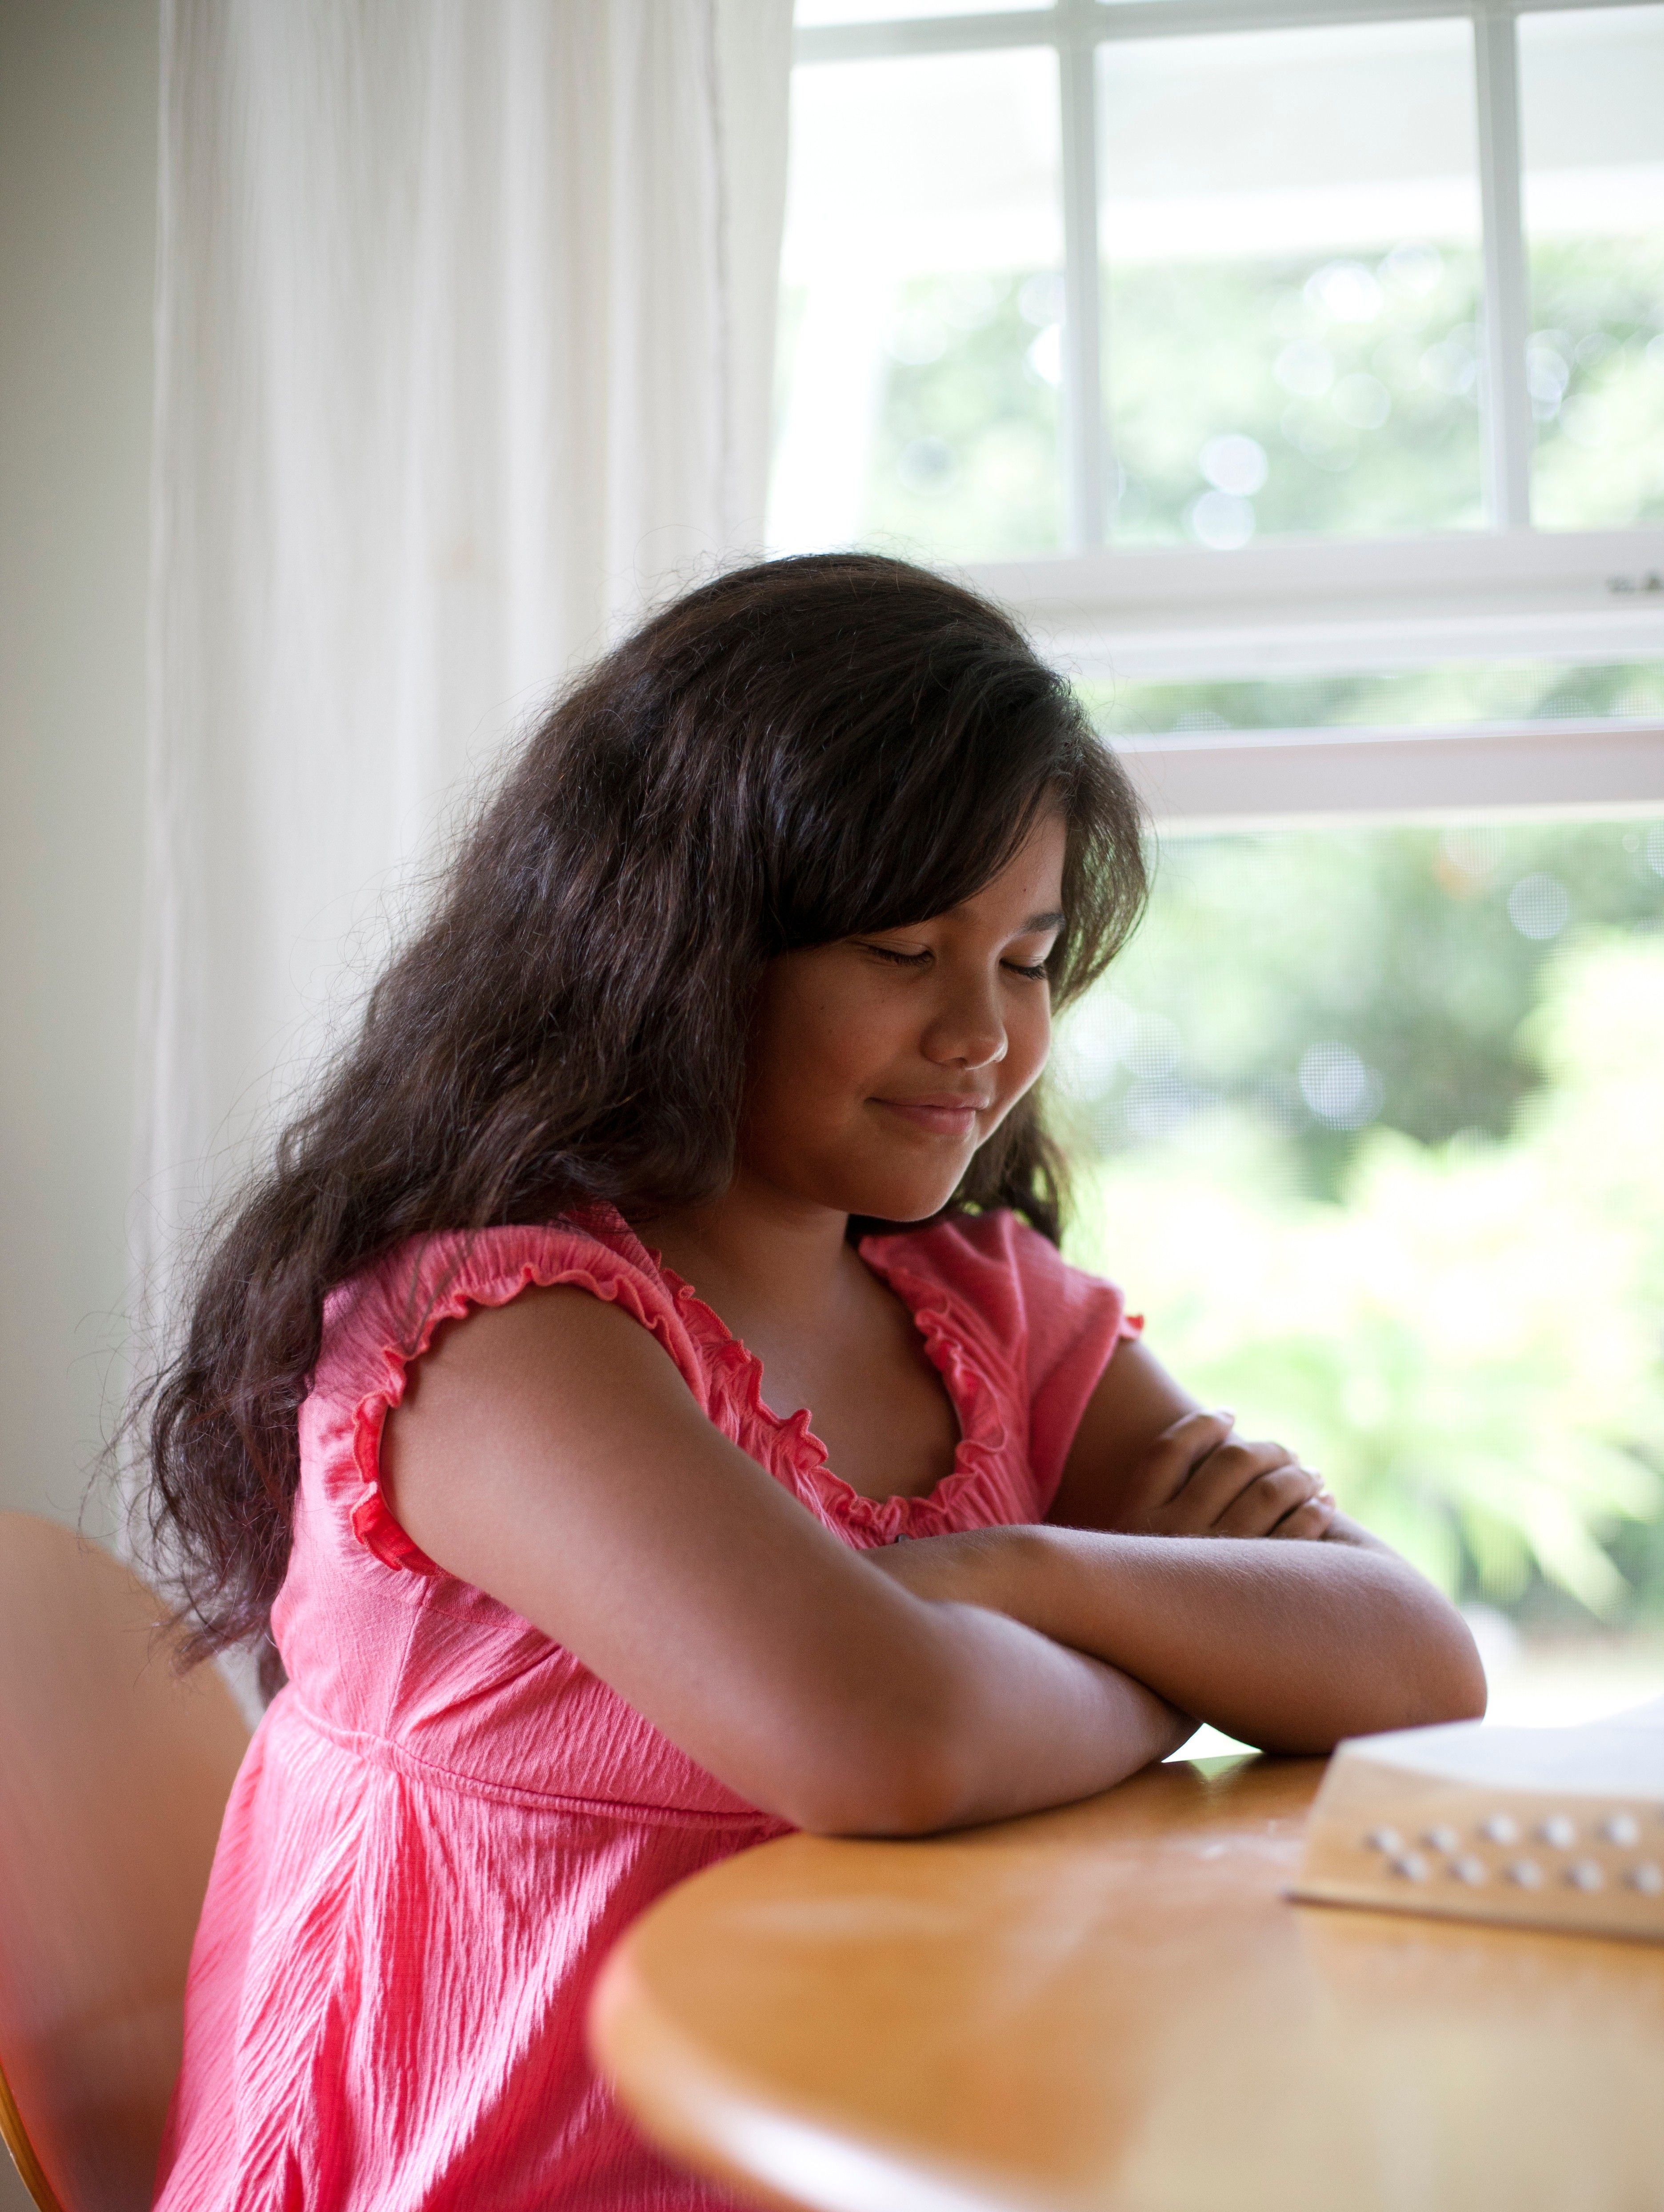 A young girl studies her scriptures at the table and prays.